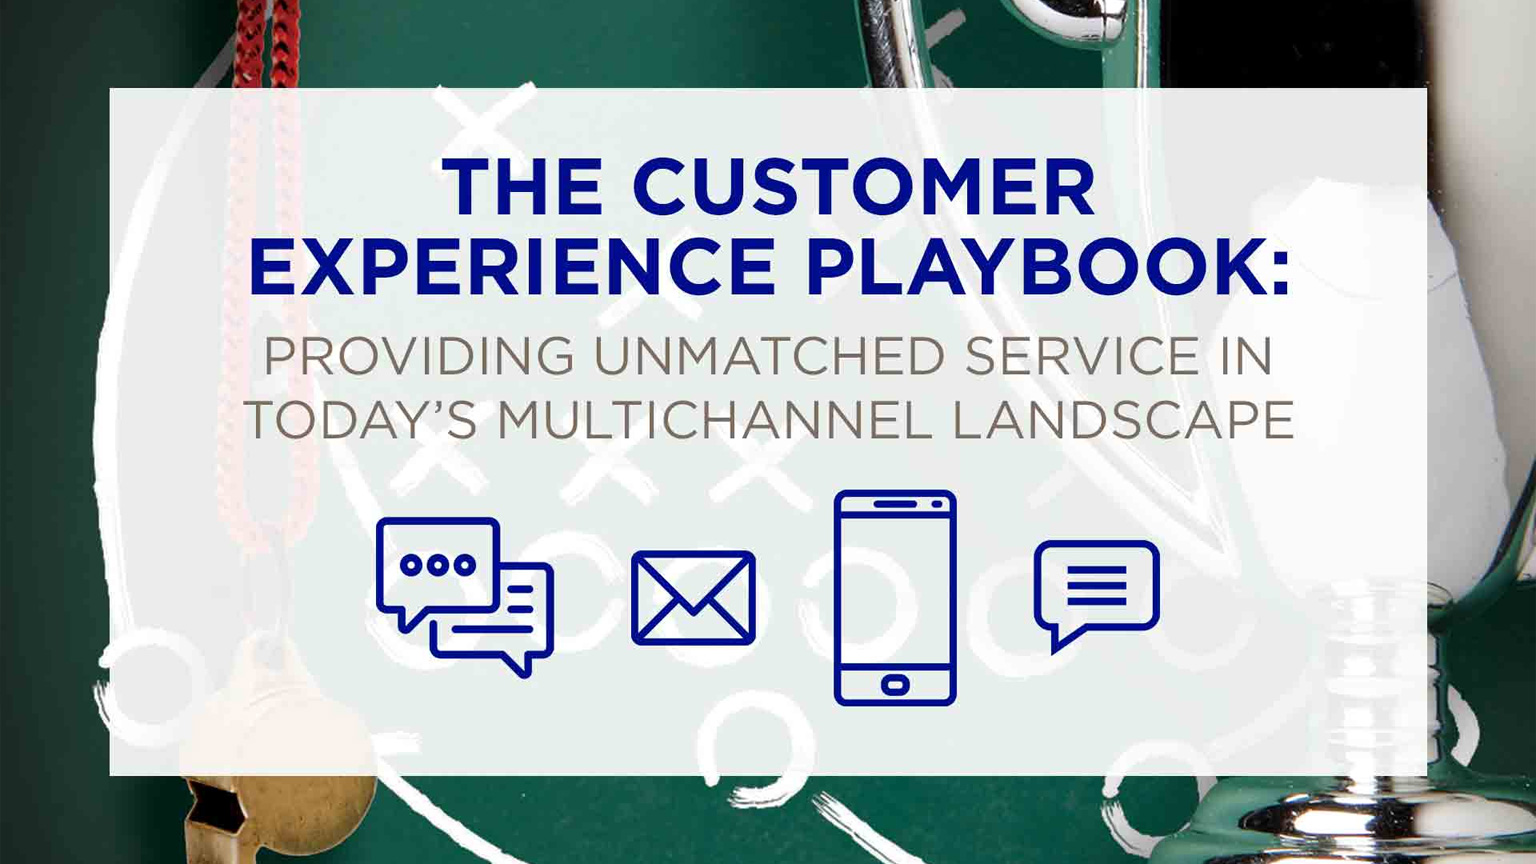 The Customer Experience Playbook: Providing Unmatched Service in Today's Multichannel Landscape